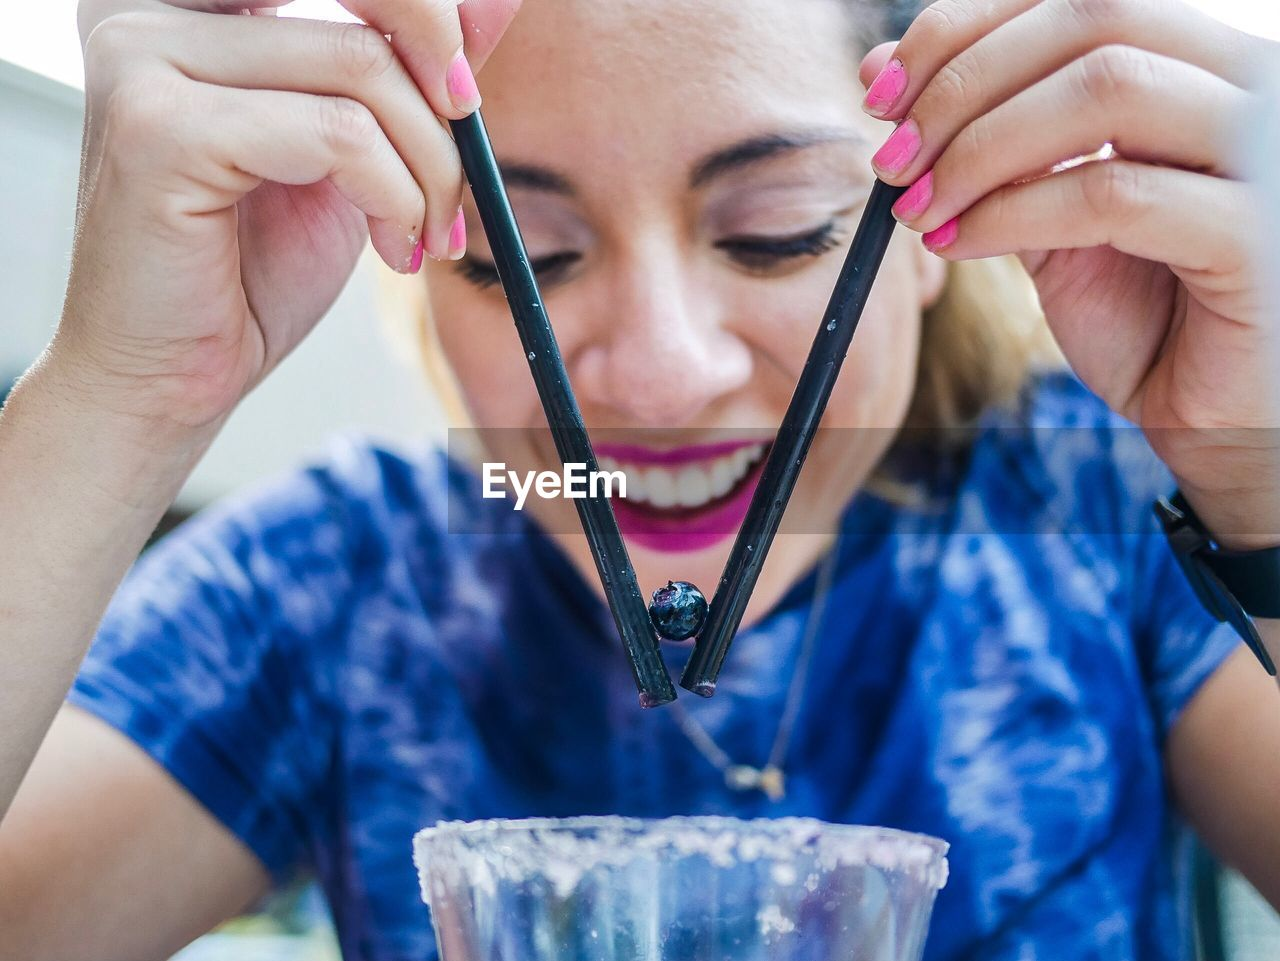 Happy Woman Picking Up Blueberry With Drinking Straws Over Glass